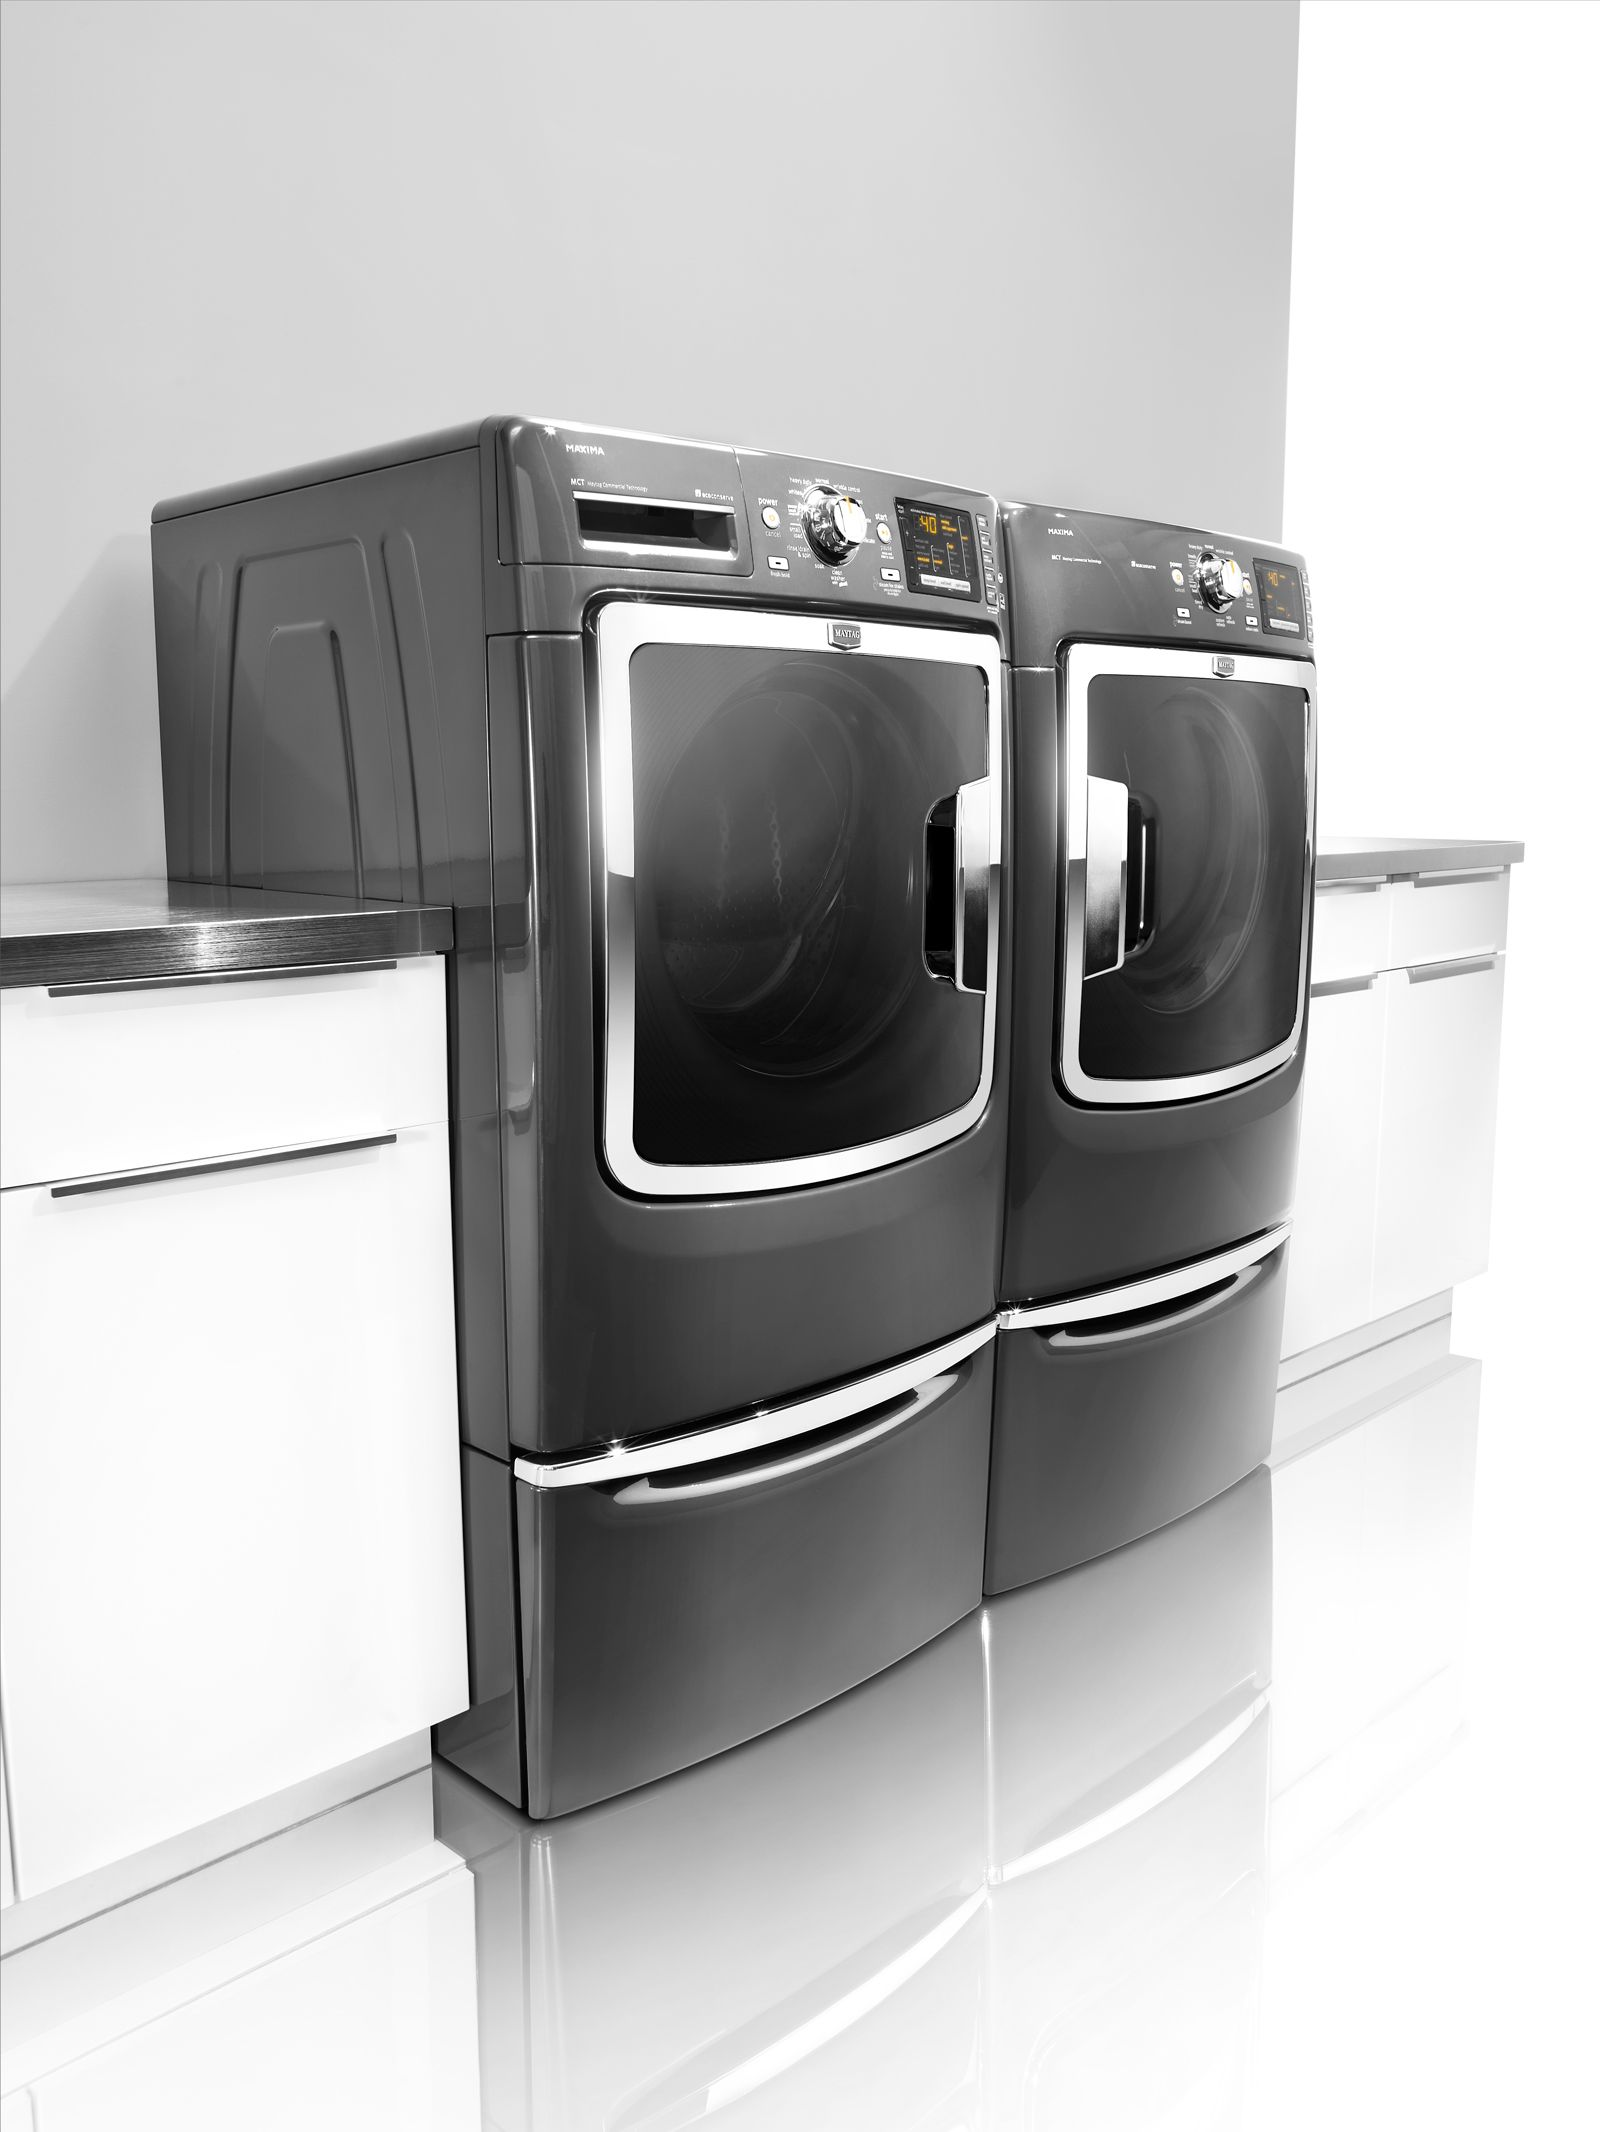 gray cycle maytag loading p site slate front ft buy cu pedestal metallic washer best